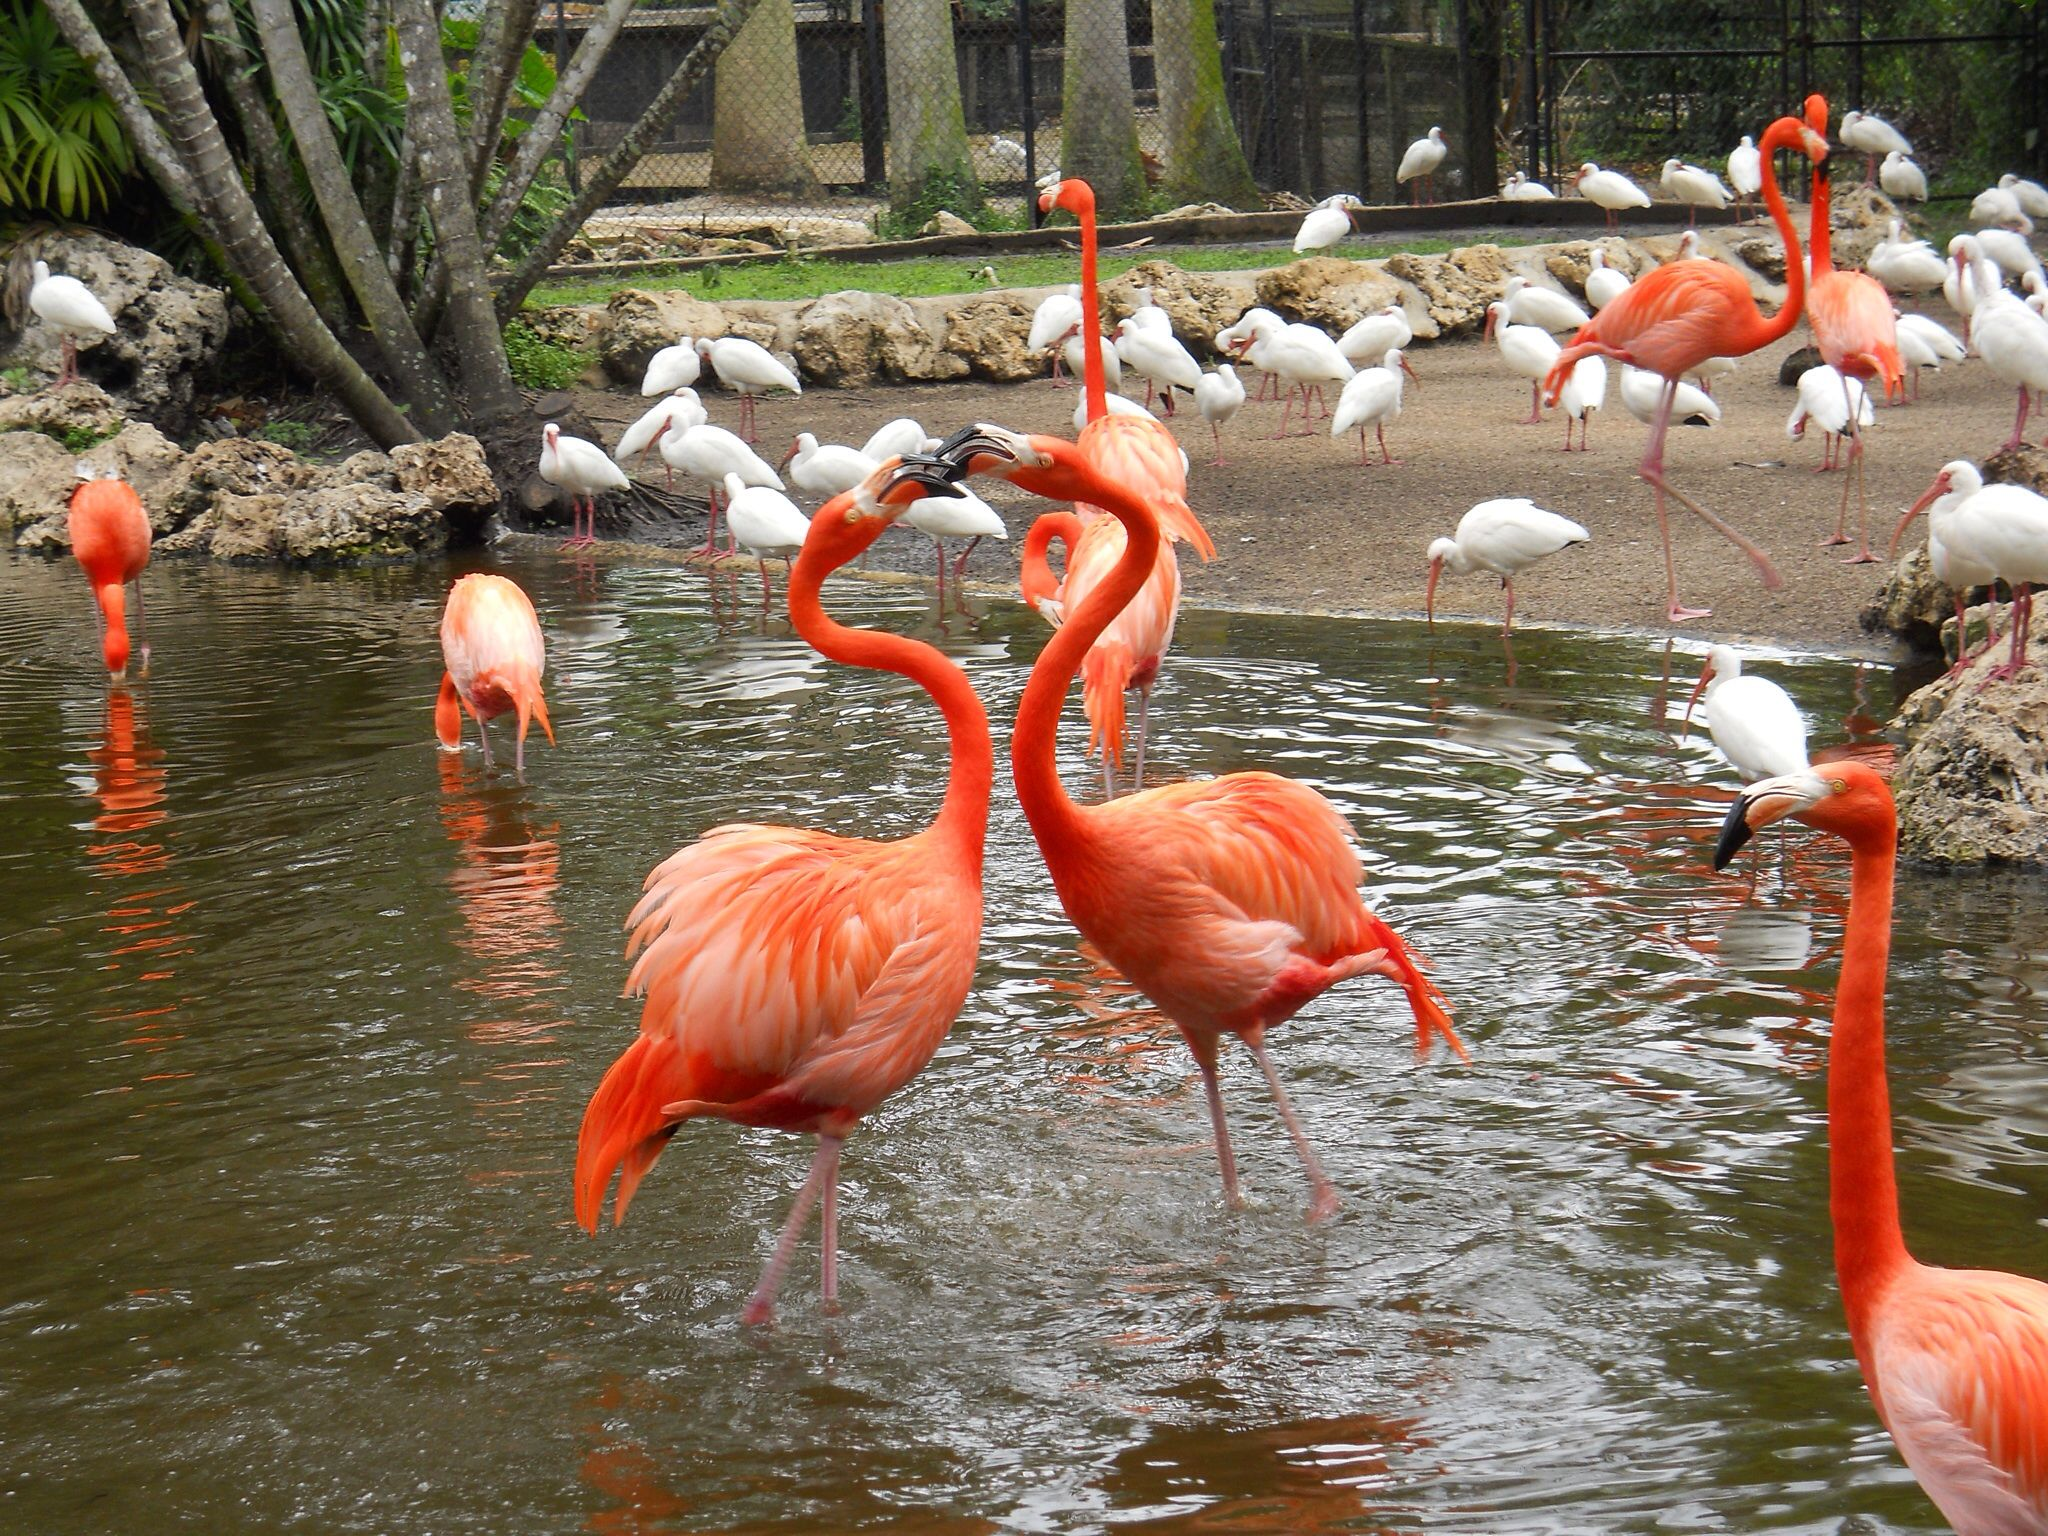 Flamingo gardens davie florida 20 minutes from downtown ft lauderdale a must see places i for Flamingo gardens fort lauderdale